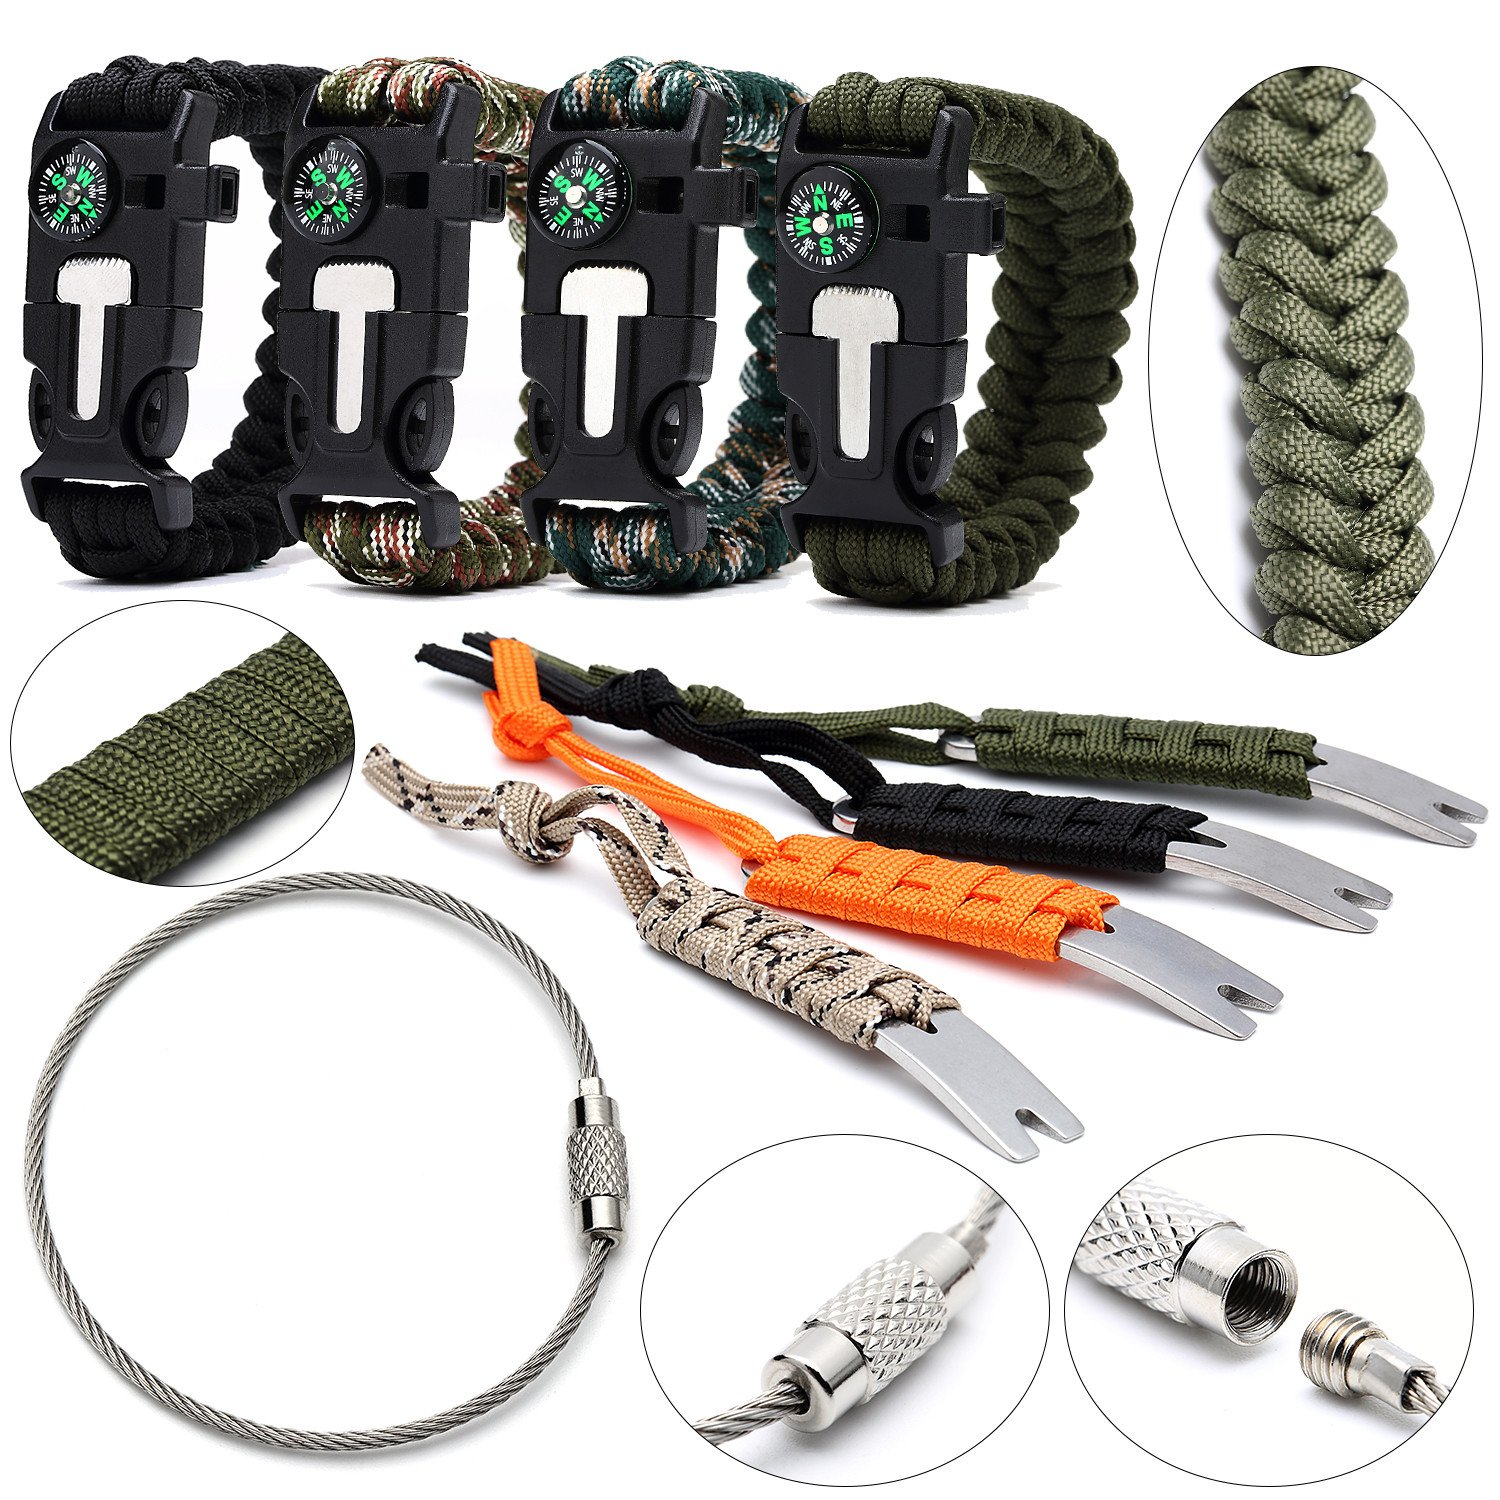 Survival Paracord Bracelet with Compass (4) + Mini Crowbar (4) - Stainless Steel Wire Keychain Cords (20) - Braclet Featurees Flint Fire Starter + Emergency Knife & Whistle